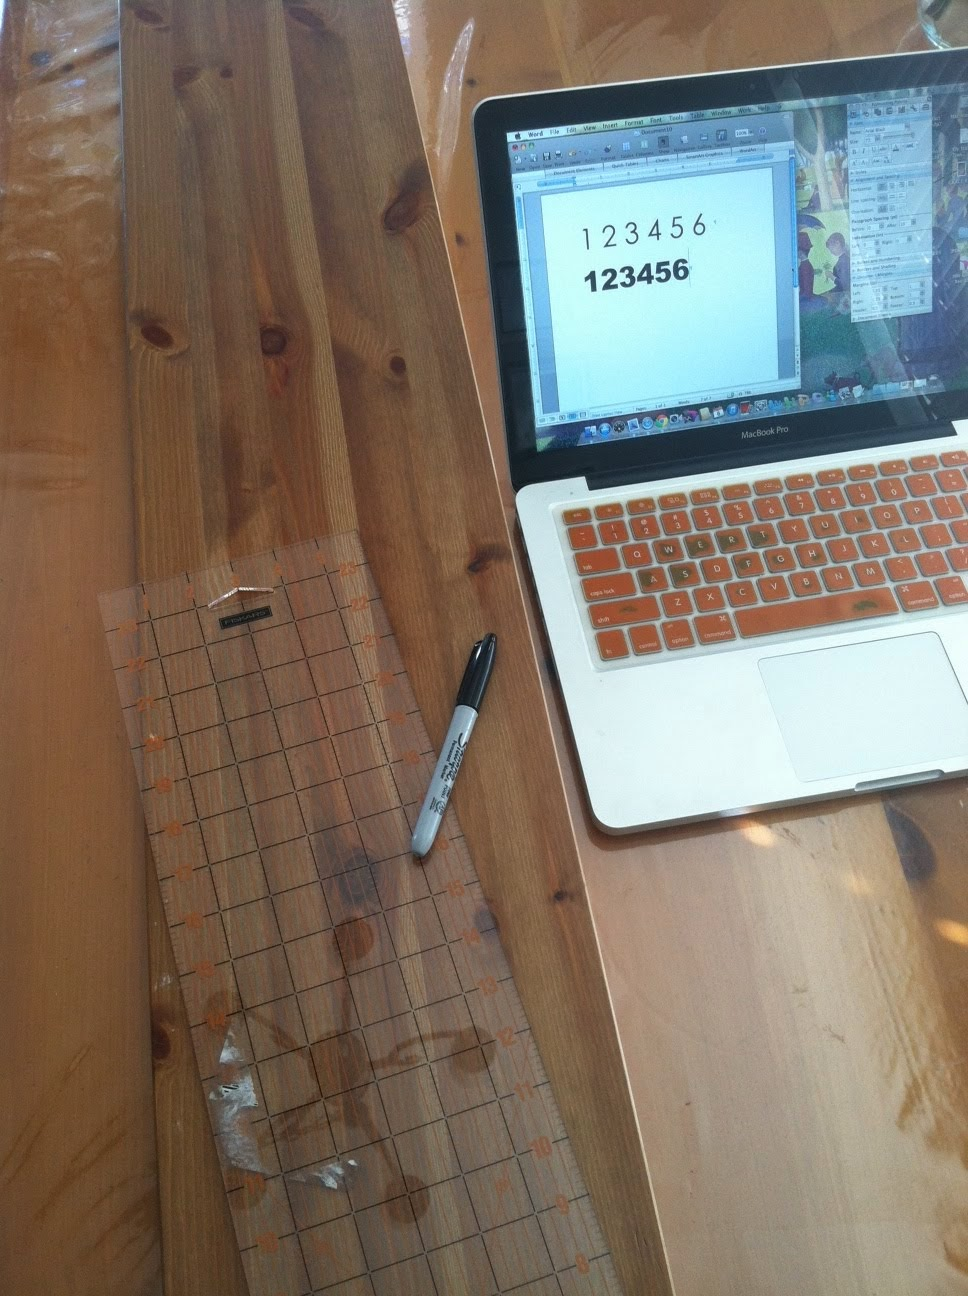 Rebeccas round up diy wood ruler growth chart a pottery barn photo1 779114g geenschuldenfo Choice Image